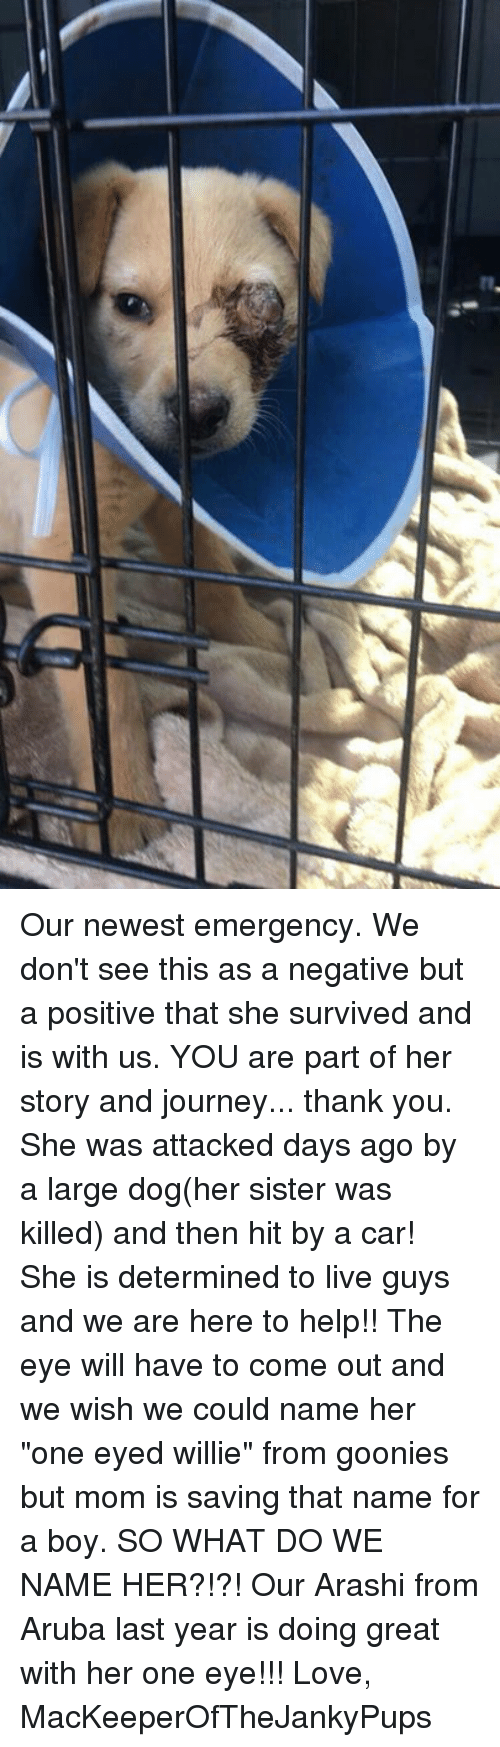 """Journey, Love, and Memes: Our newest emergency. We don't see this as a negative but a positive that she survived and is with us. YOU are part of her story and journey... thank you. She was attacked days ago by a large dog(her sister was killed) and then hit by a car! She is determined to live guys and we are here to help!! The eye will have to come out and we wish we could name her """"one eyed willie"""" from goonies but mom is saving that name for a boy. SO WHAT DO WE NAME HER?!?! Our Arashi from Aruba last year is doing great with her one eye!!!   Love, MacKeeperOfTheJankyPups"""